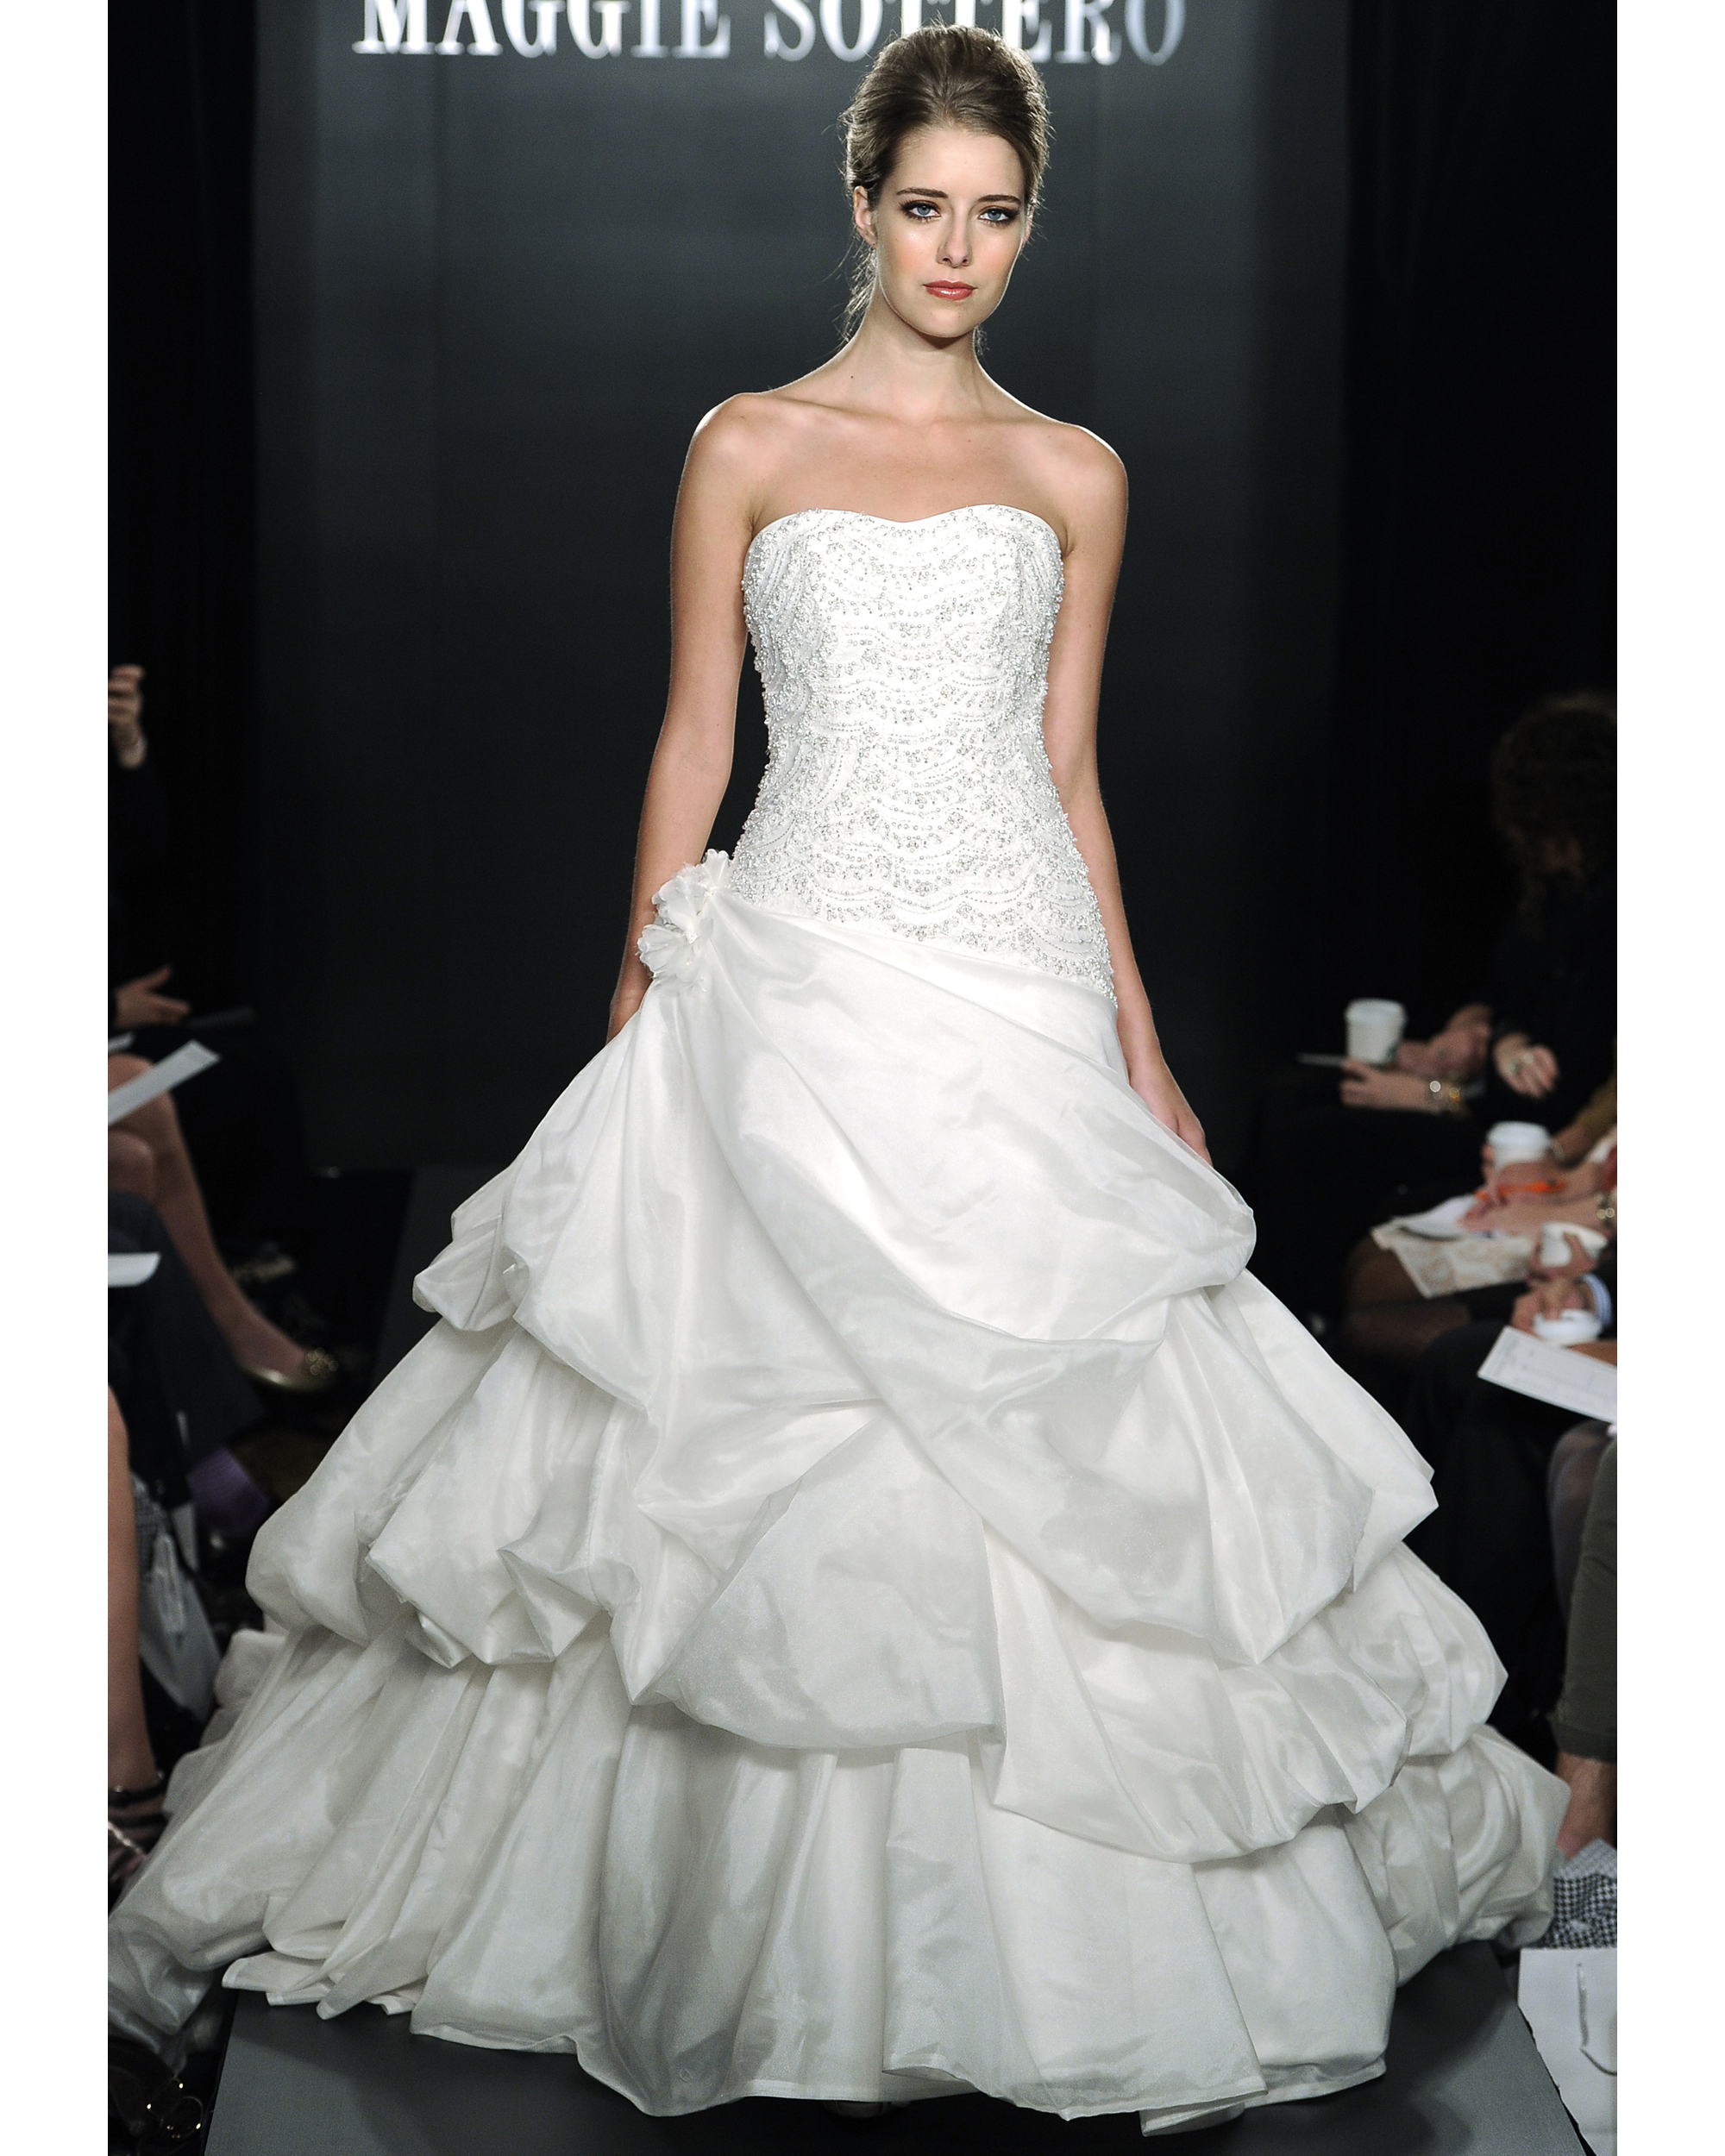 maggie-sottero-fall2012-wd108109_029.jpg